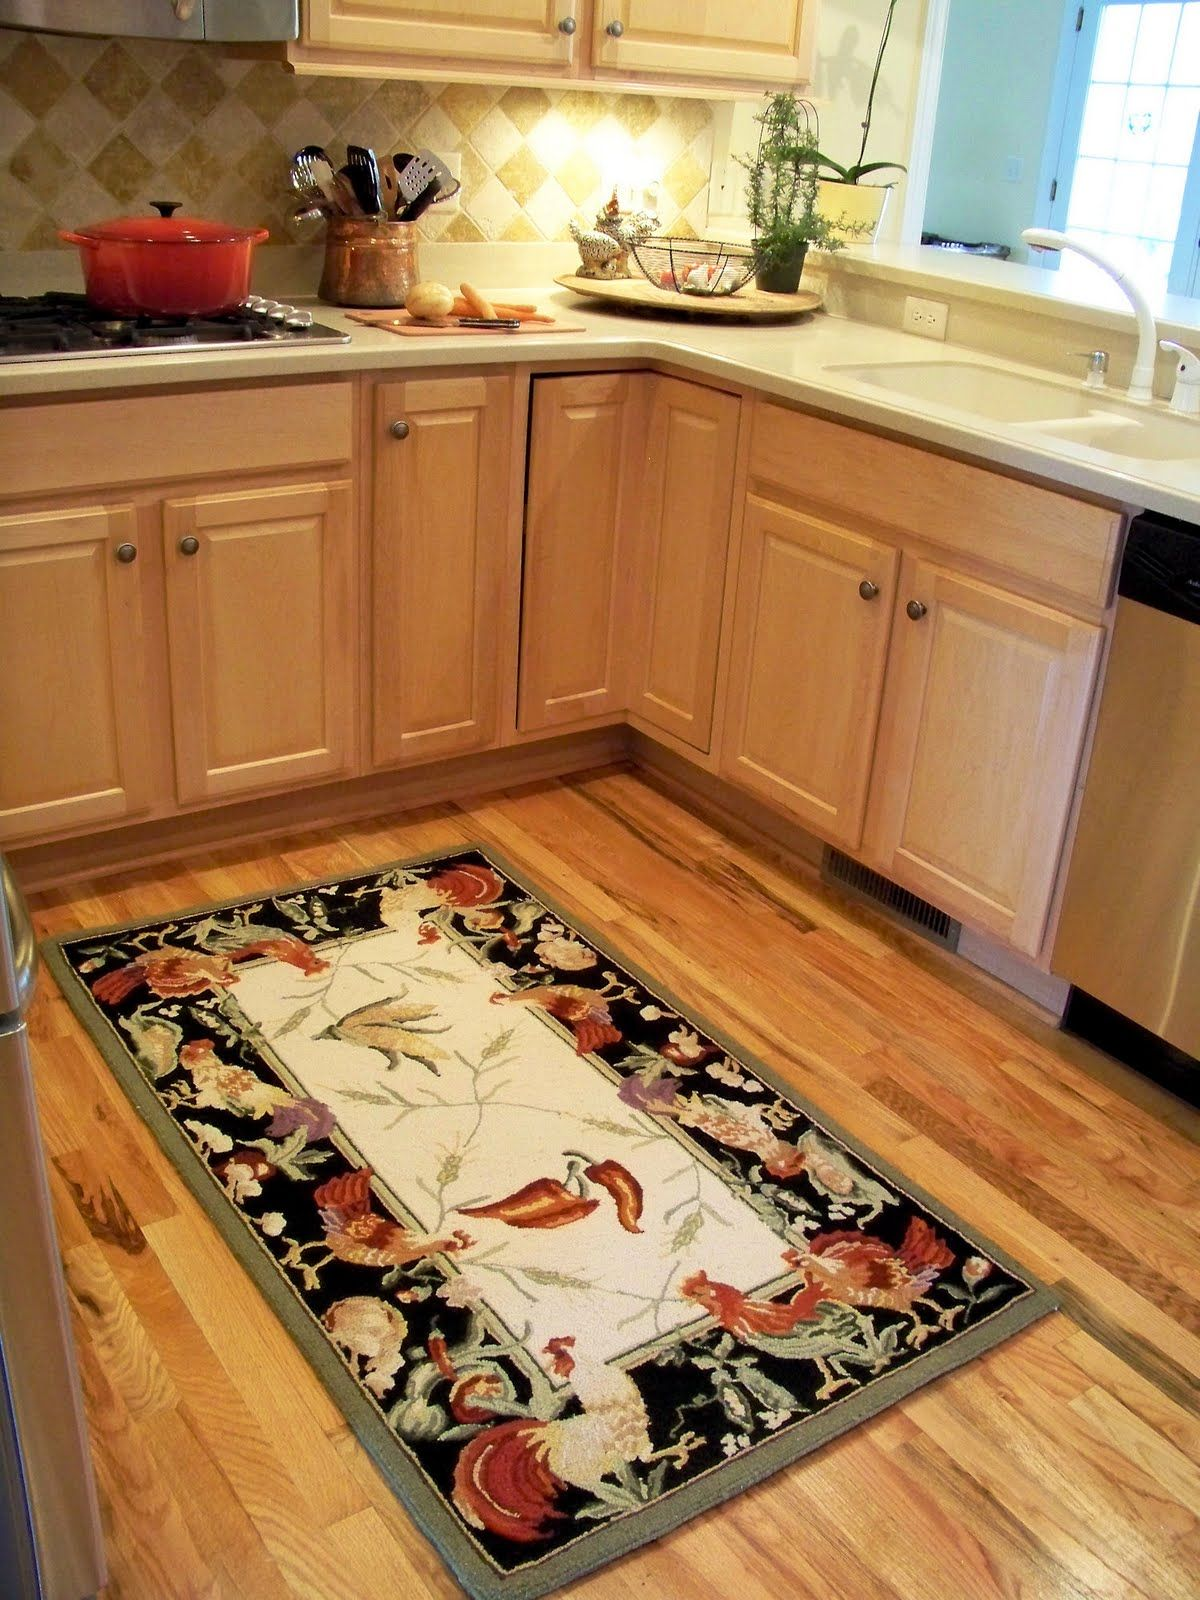 Kitchen Rugs Hardwood Floors   This Means That The Type Of Flooring In This  Room Have To Be Resilient Enough To Withstand The Heavy Foot Traffic.